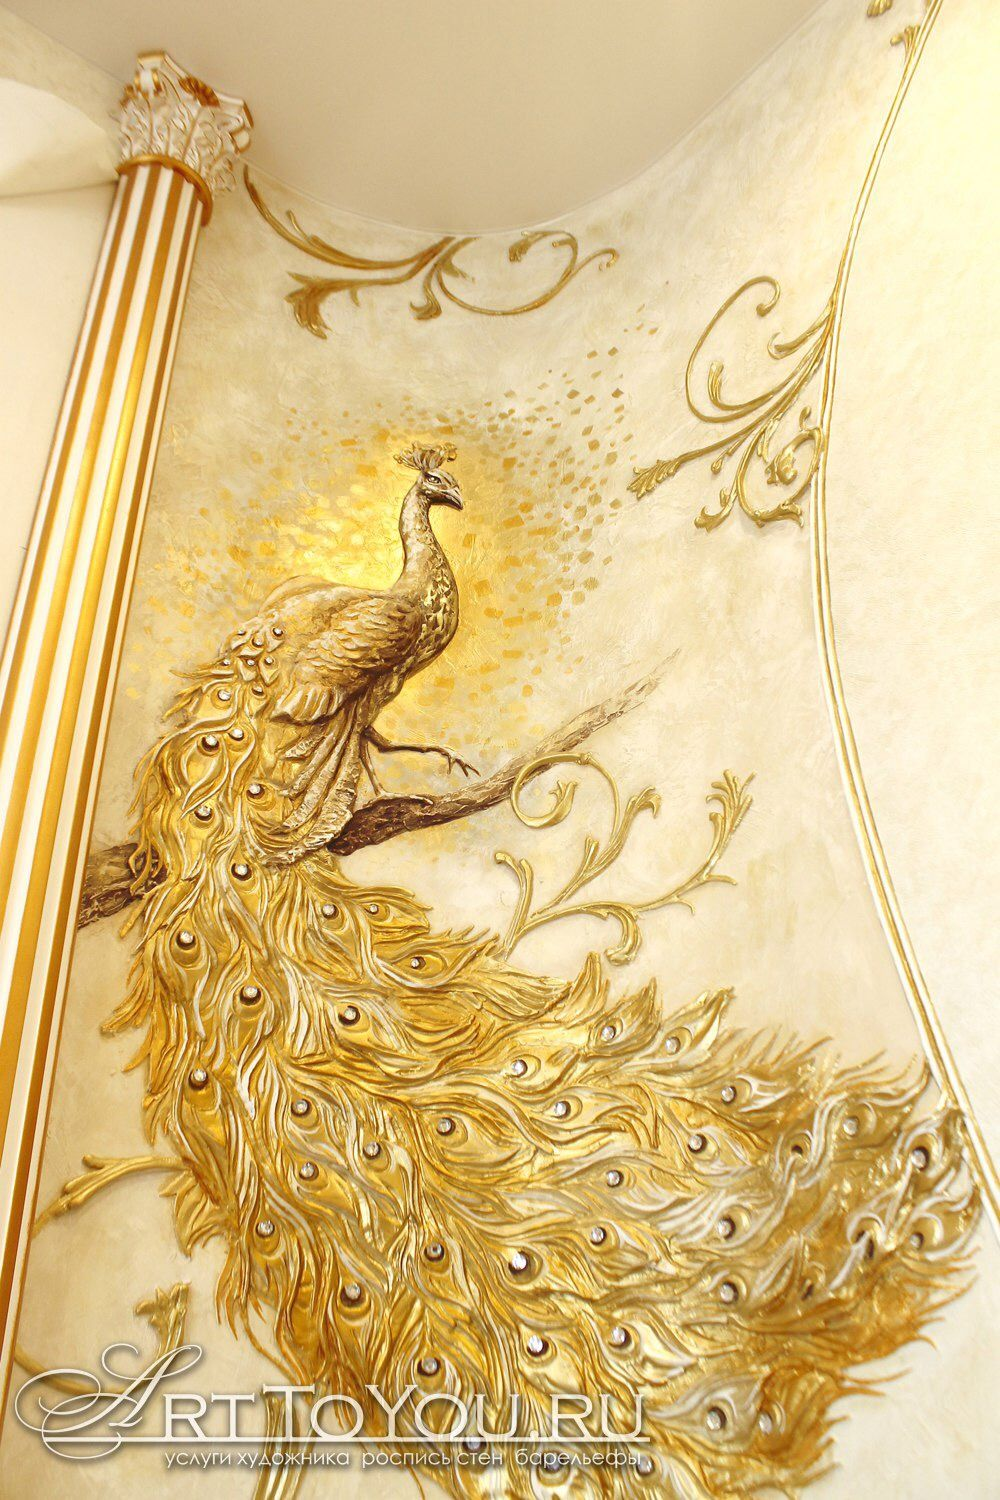 Pin by aq on wall art pinterest peacock art and peacock art